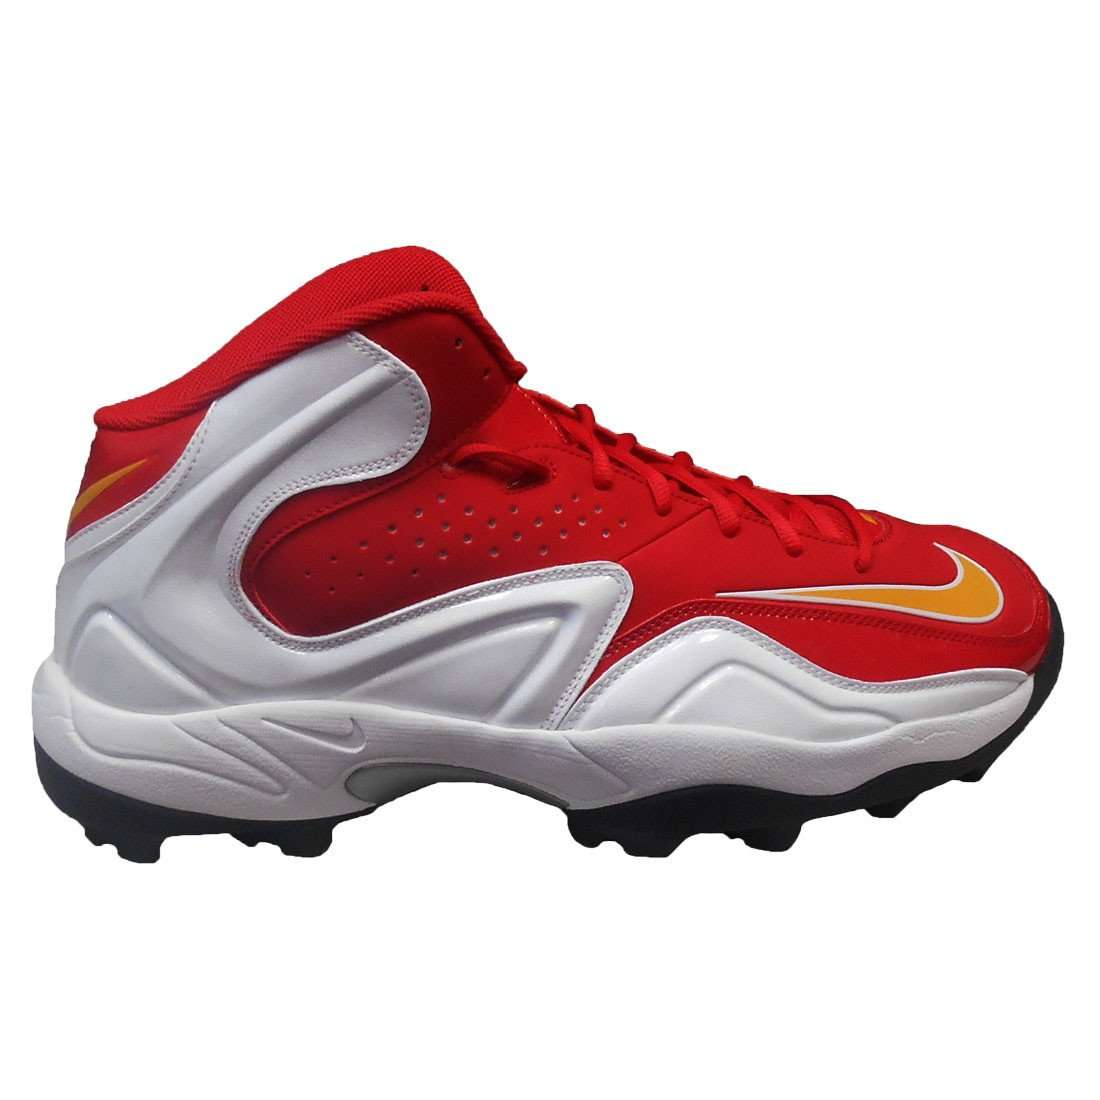 size 40 050a9 dcae9 ... Nike Zoom Merciless Pro Shark PF Football Cleats - League Outfitters ...